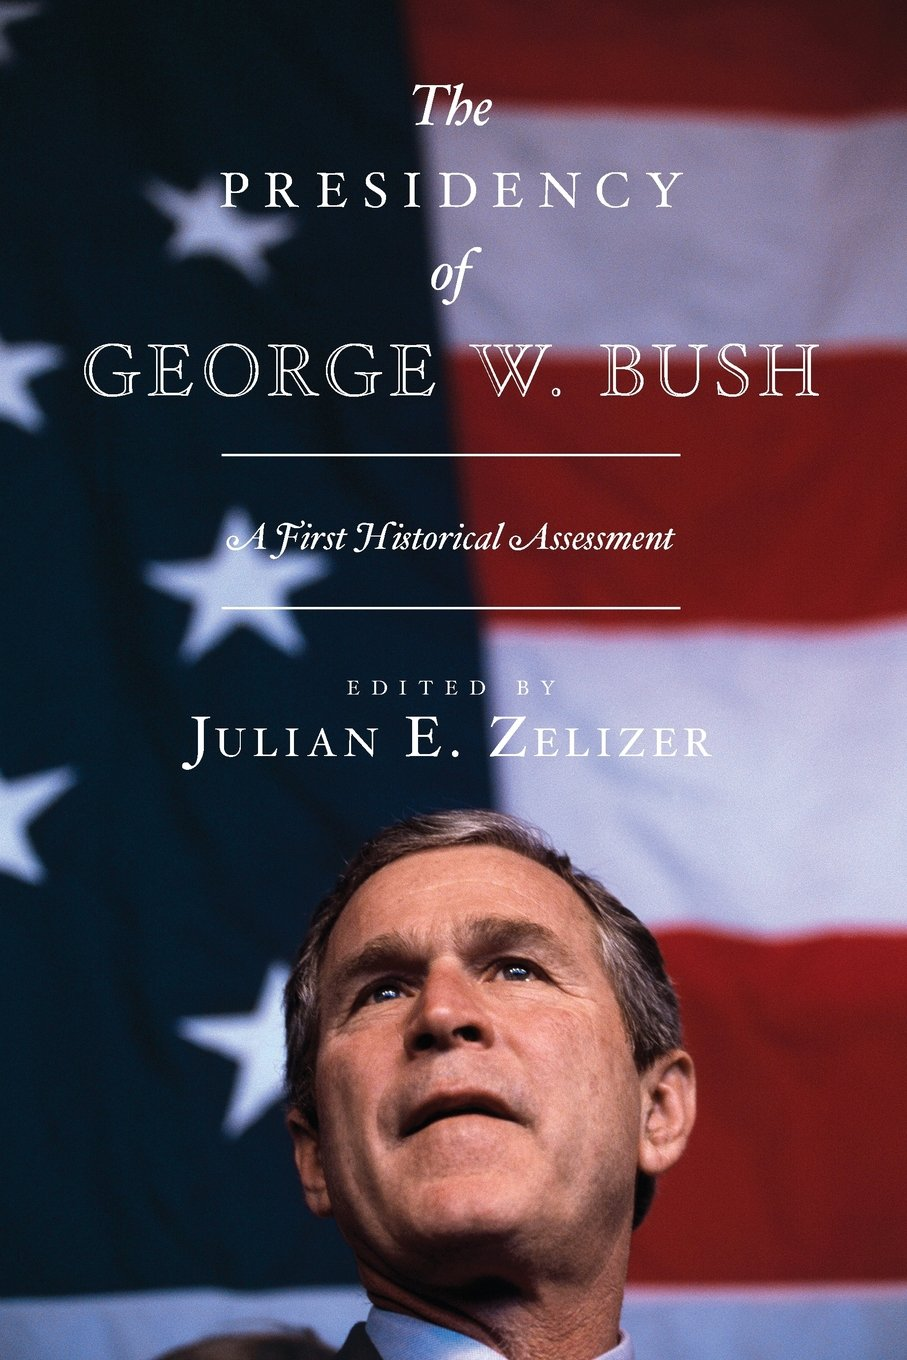 the presidency of george w bush a first historical assessment the presidency of george w bush a first historical assessment julian e zelizer 9780691149011 com books